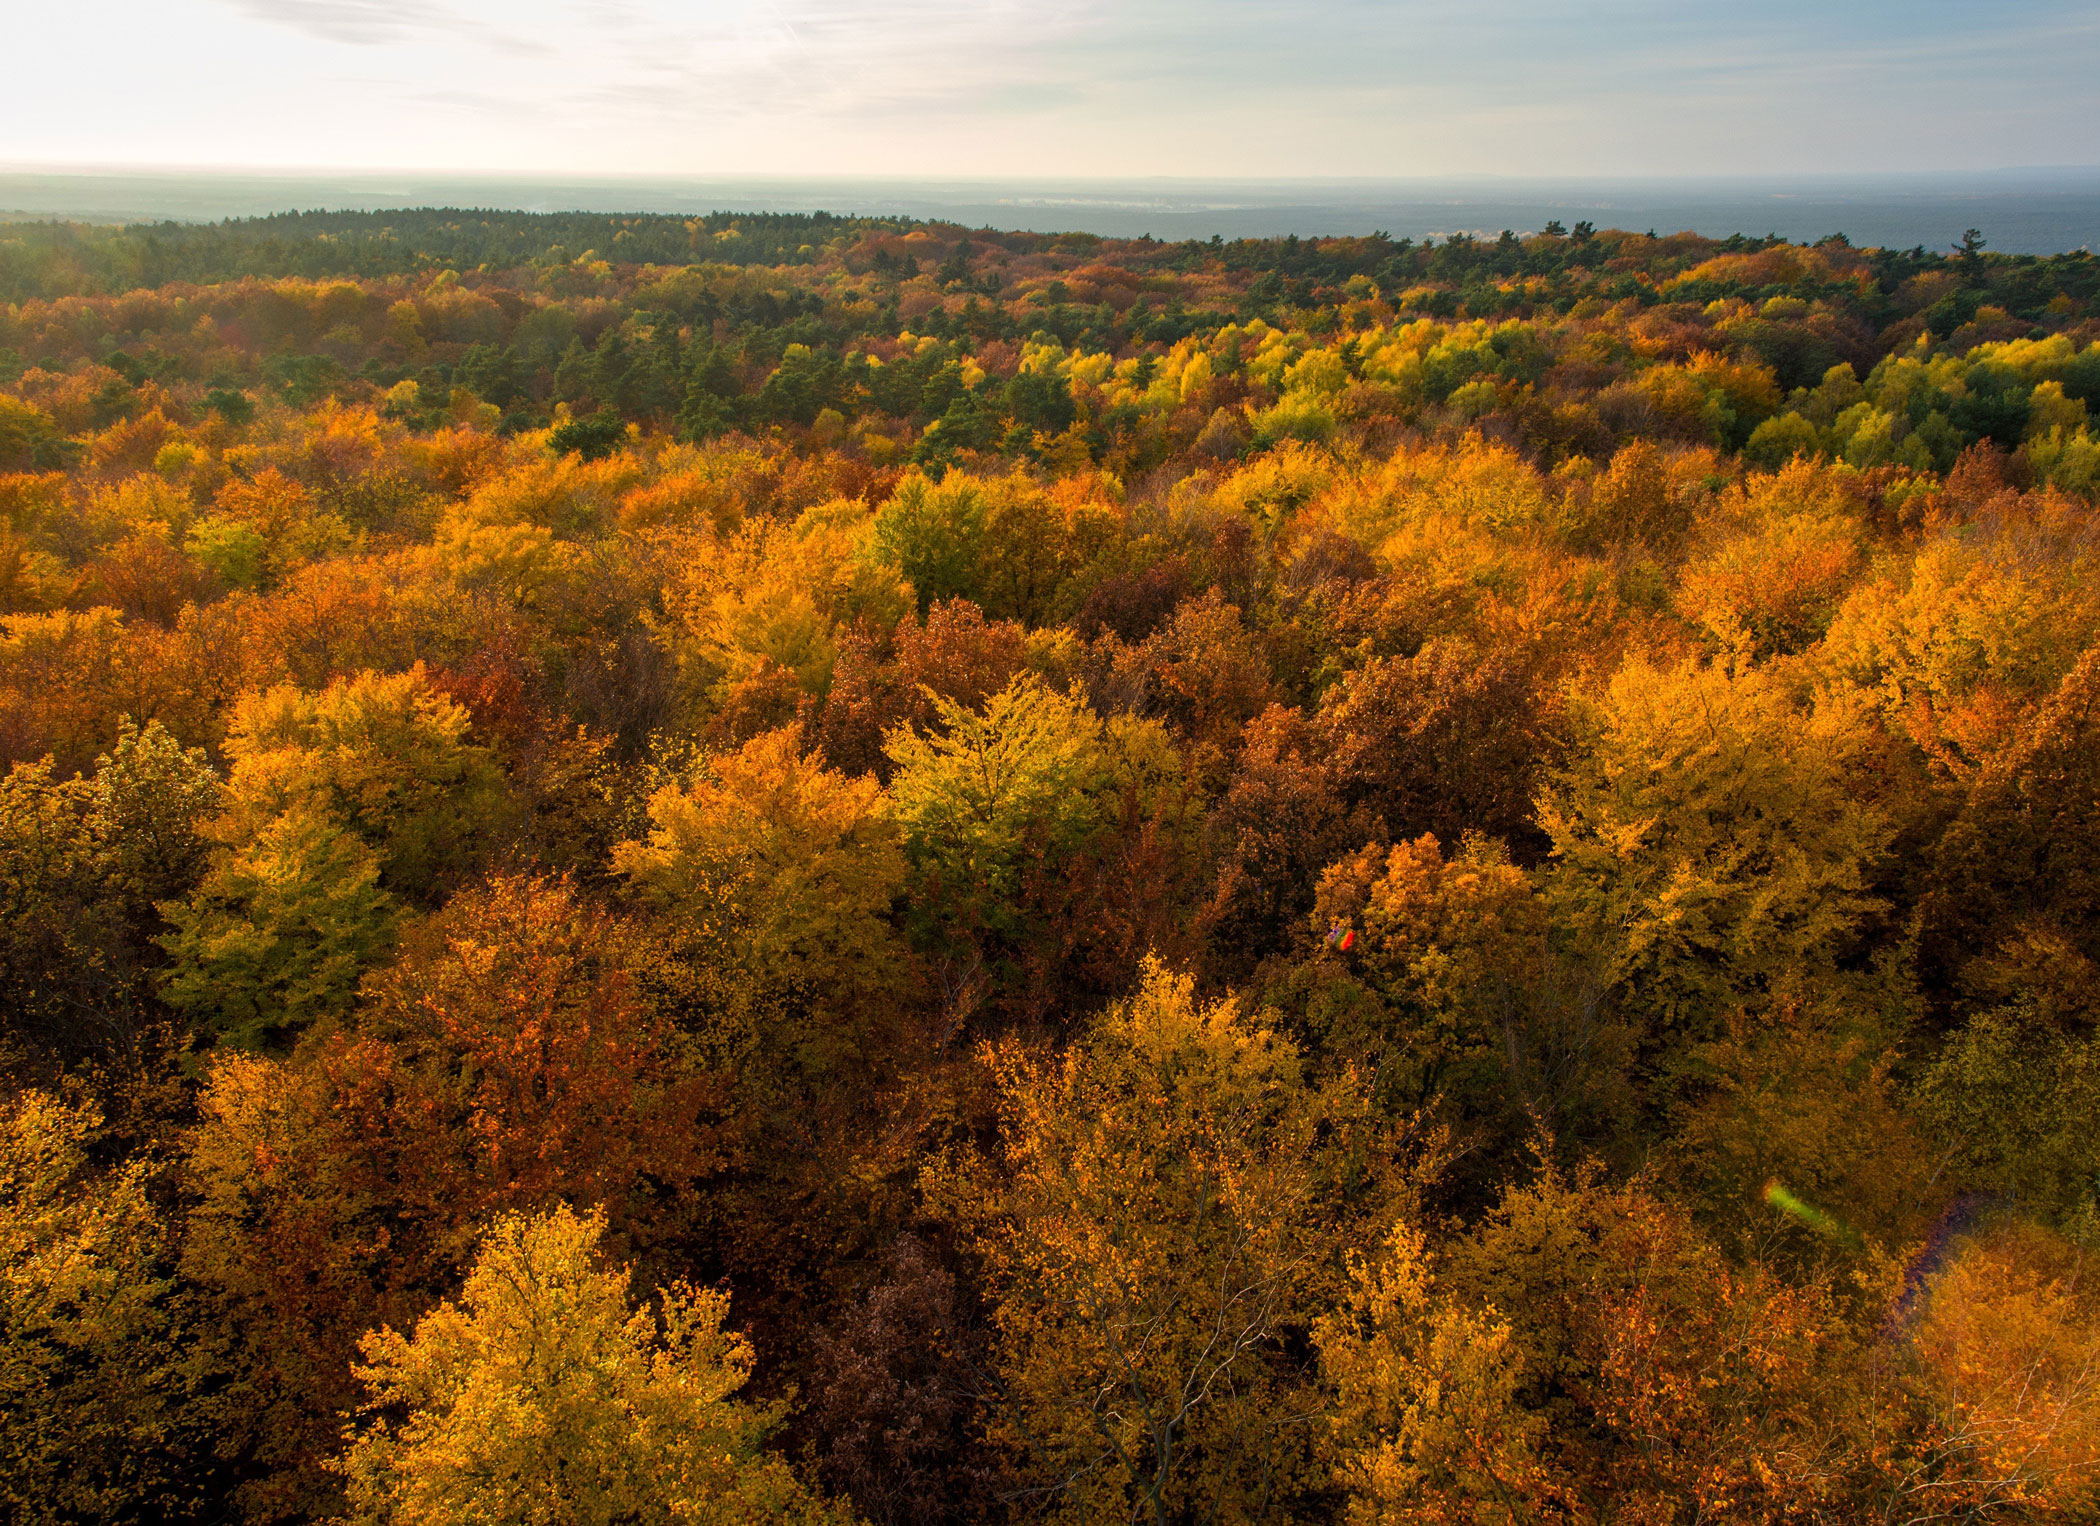 The view over an autumn birch forest from a viewing platform as the sun sets in the Rauen Hills in Rauen, Germany on Nov. 1, 2015.